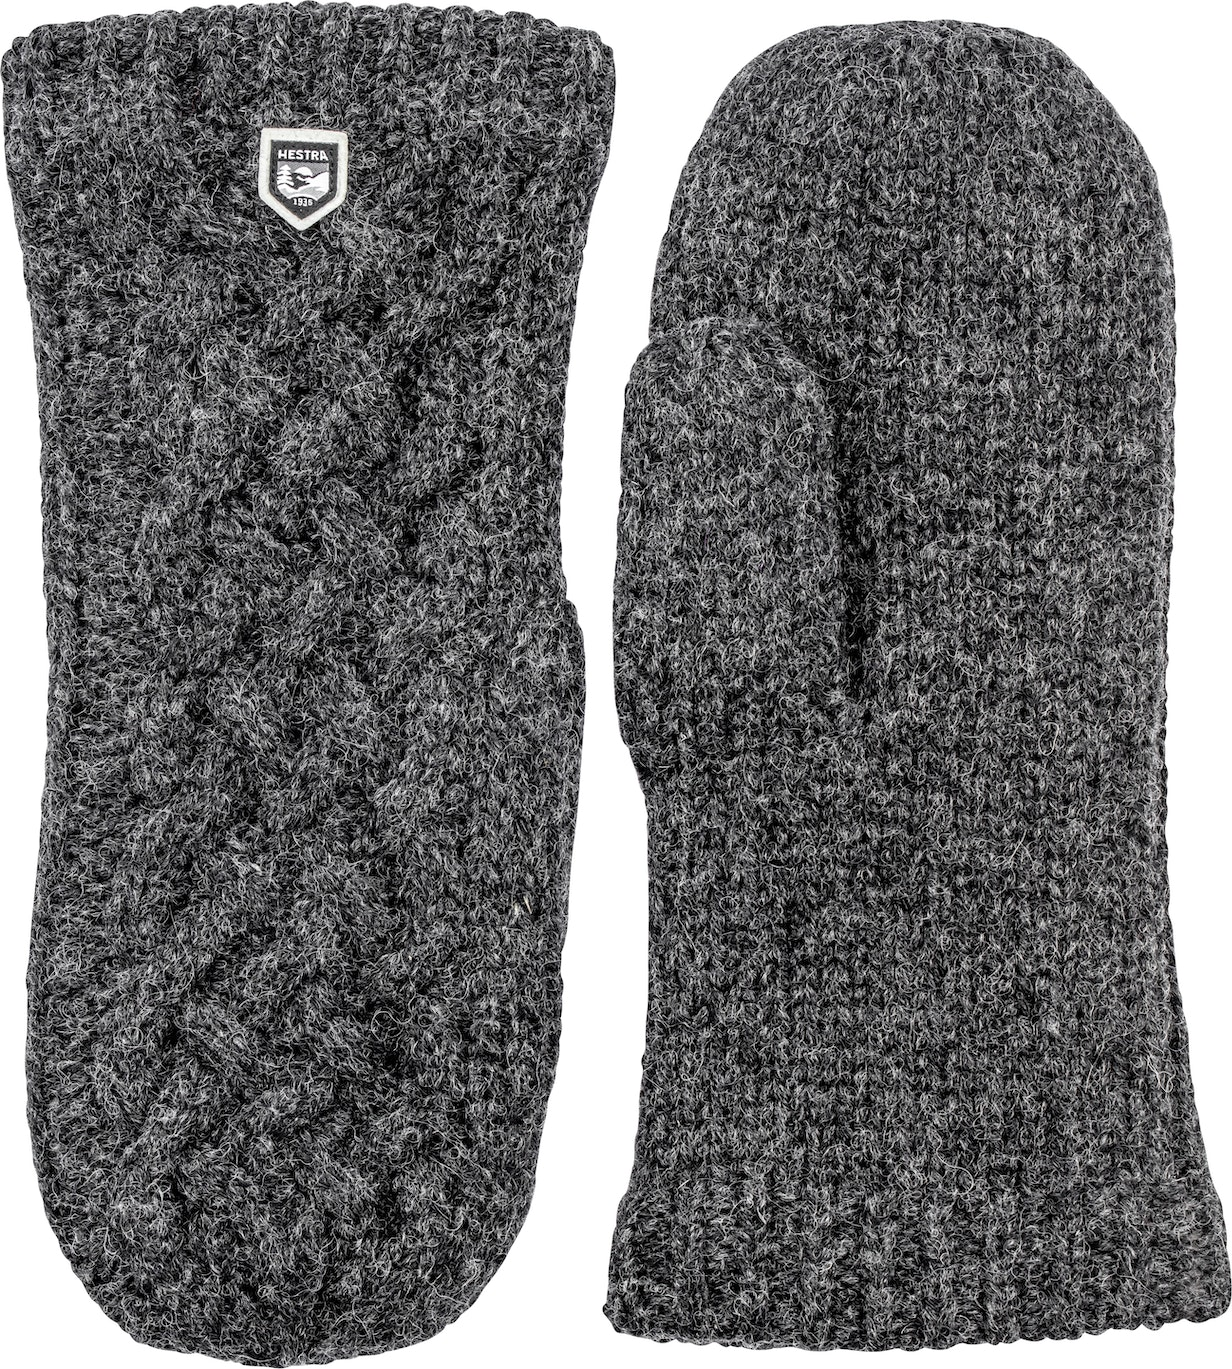 Product image for 63731 Freja Wool Mitt